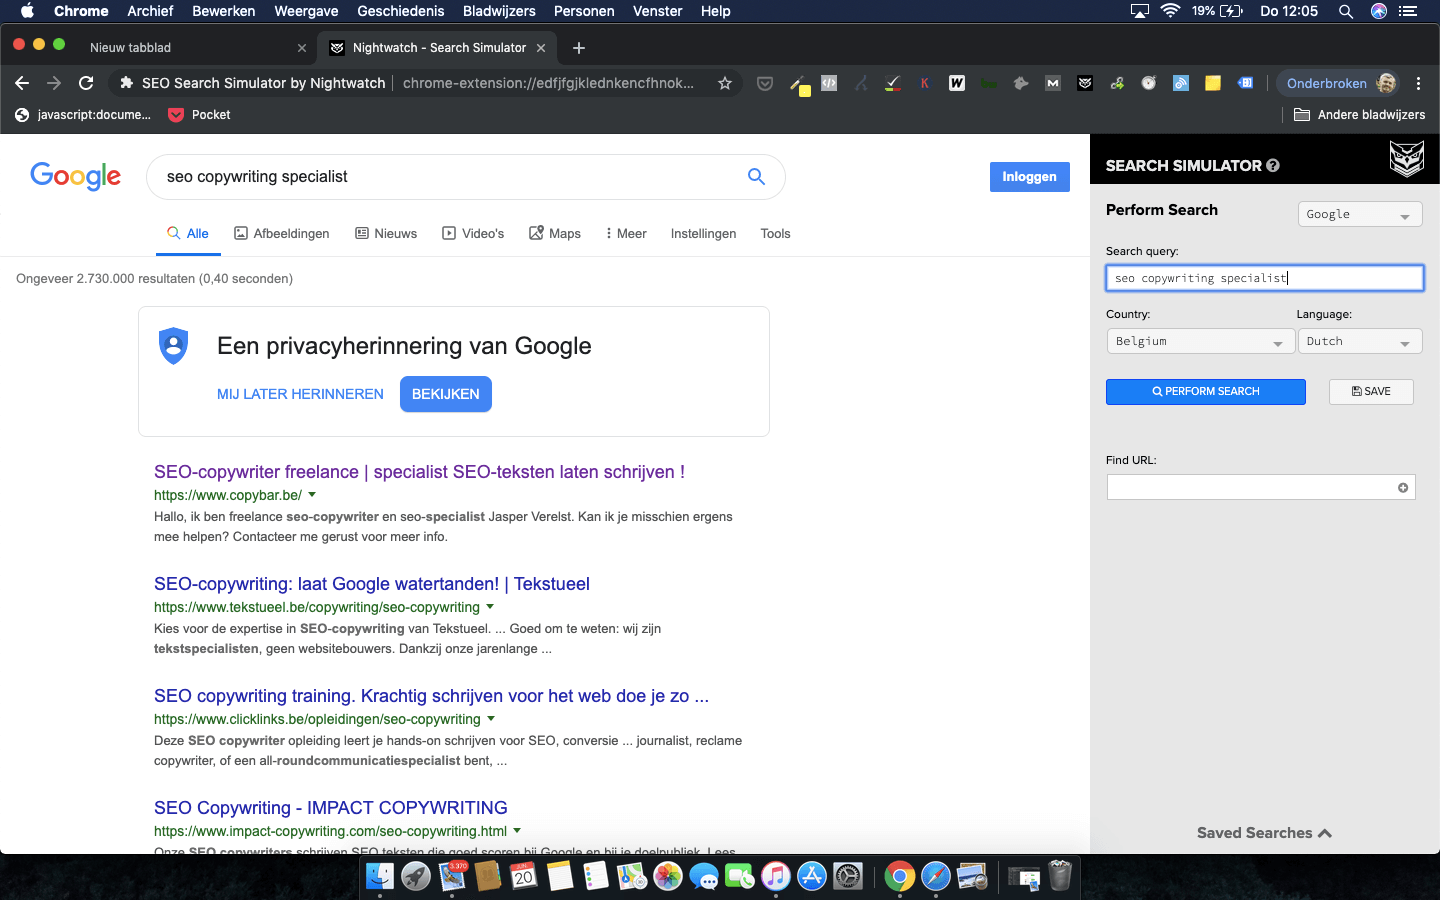 "CopyBar.be scoort Google ranking #1 op zoekwoord ""seo copywriting specialist"" - ook in Nightwatch Search Simulator"